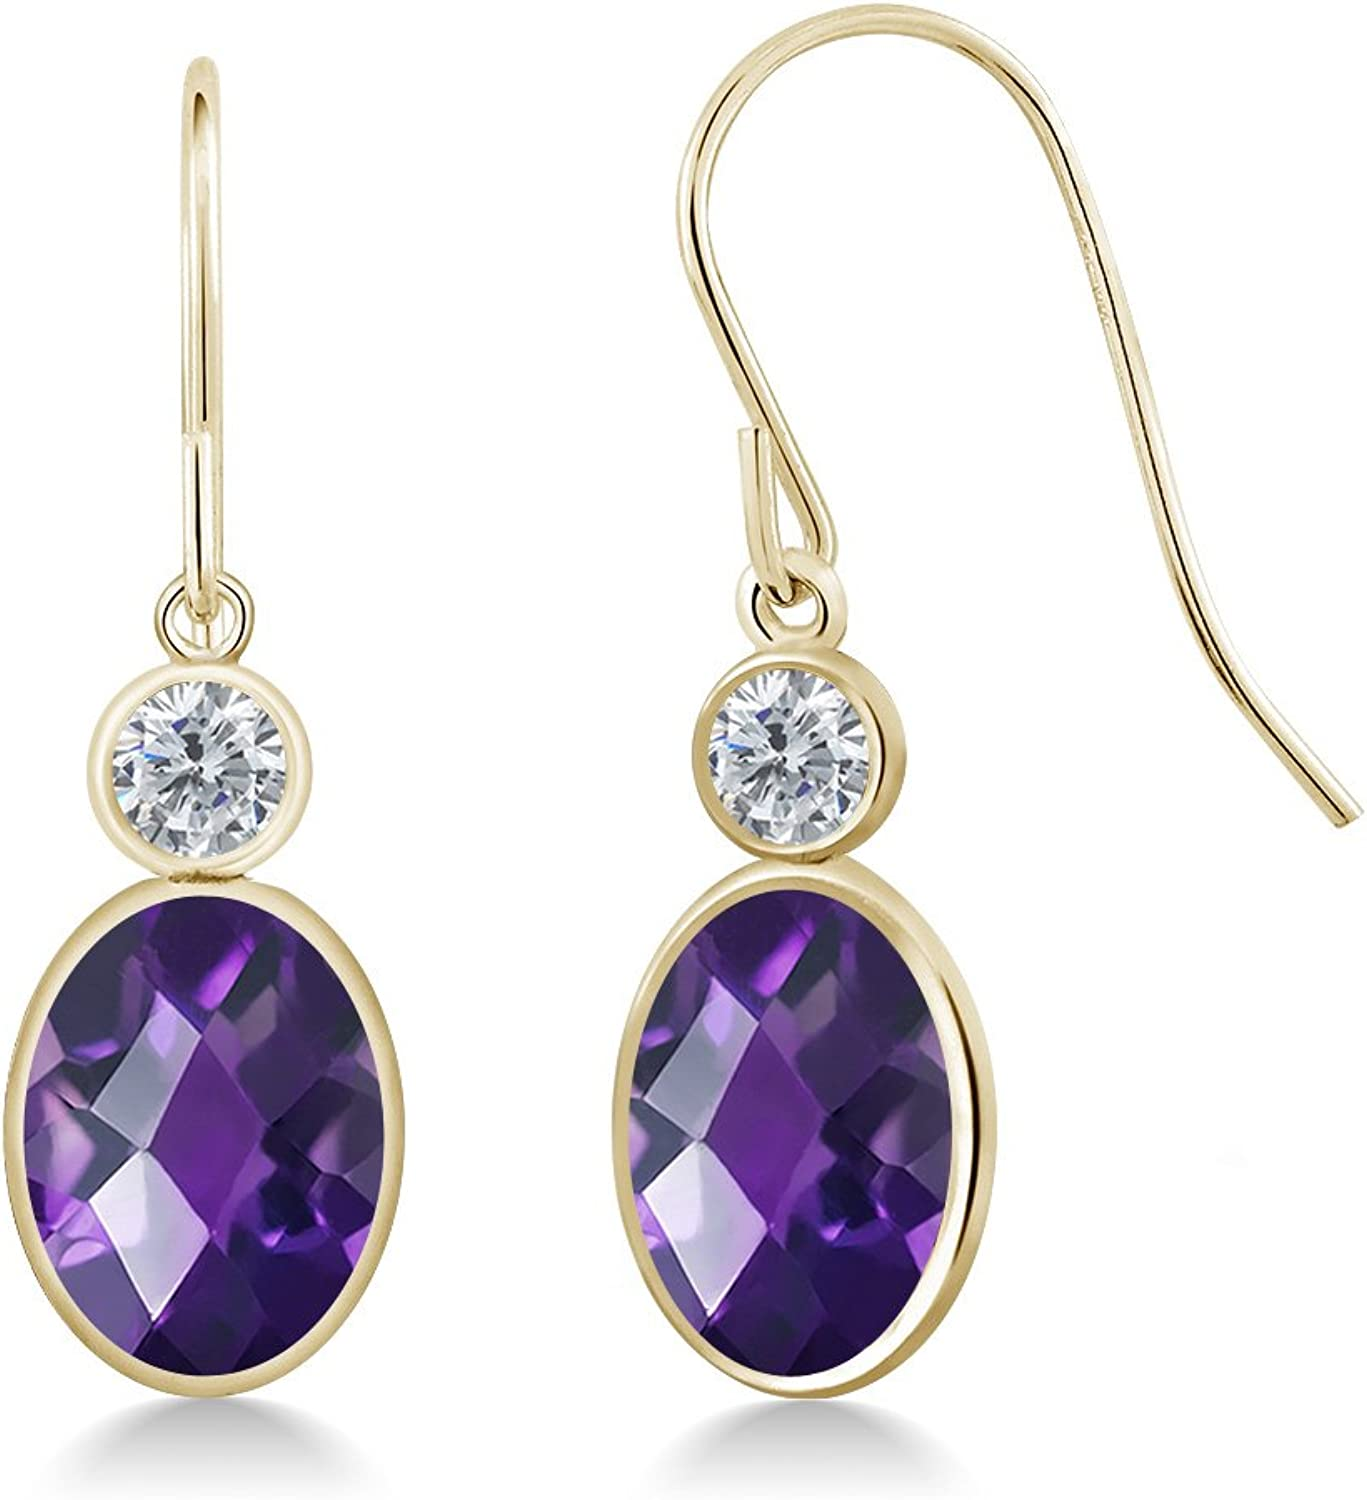 2.20 Ct Oval Checkerboard Purple Amethyst G H Diamond 14K Yellow gold Earrings